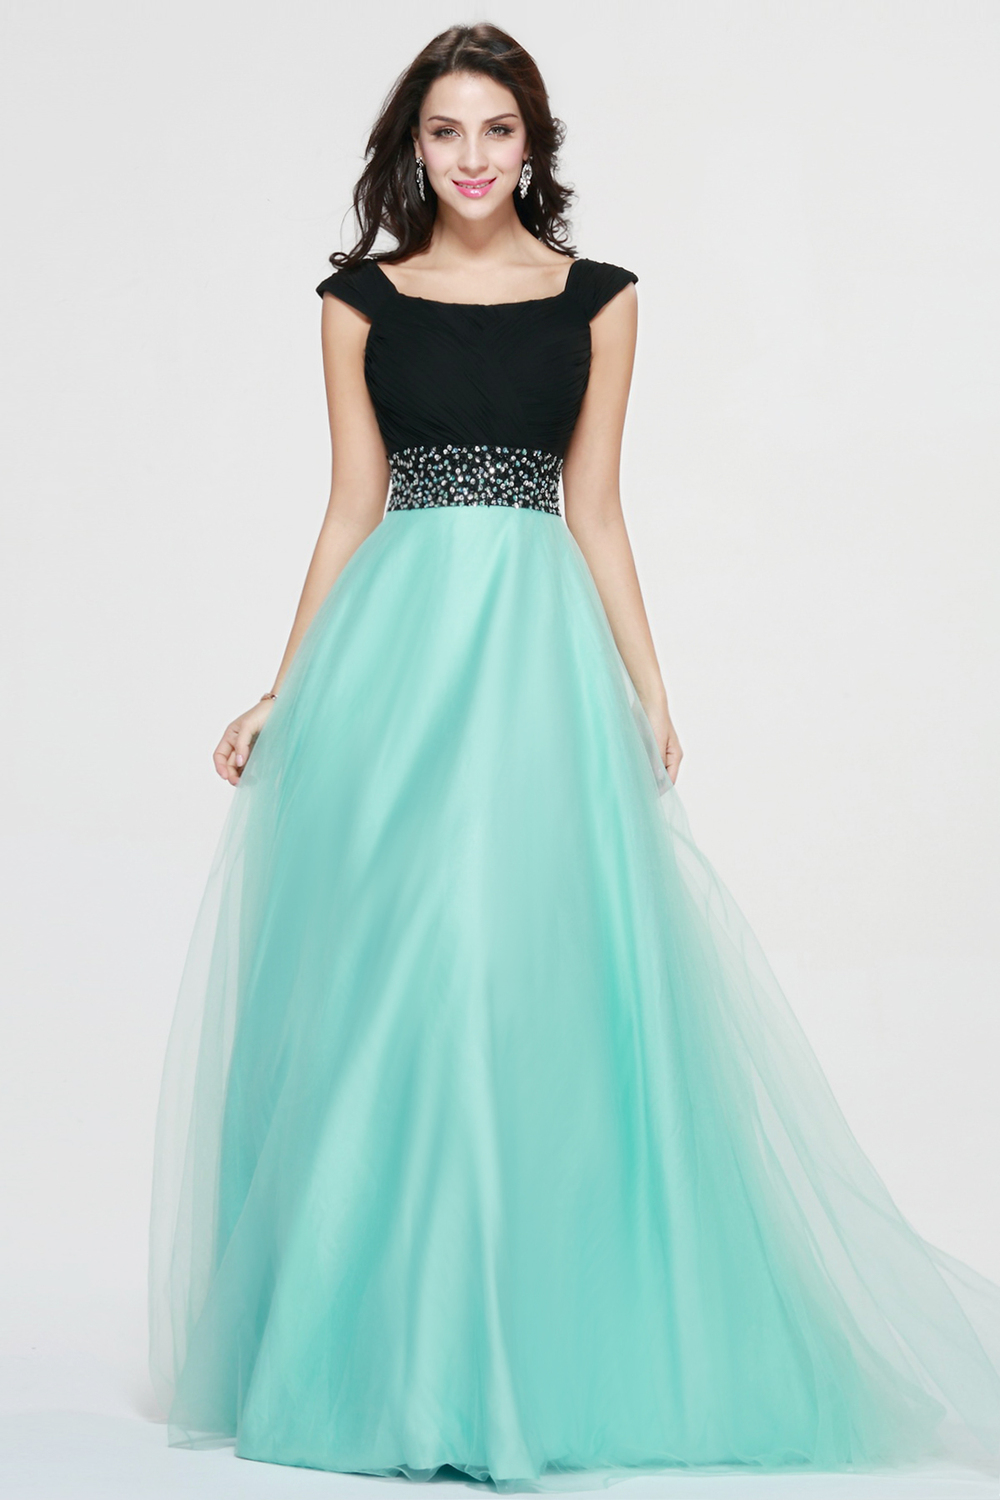 Elegant Black And Green Long Prom Dress Two Color Long Formal ...